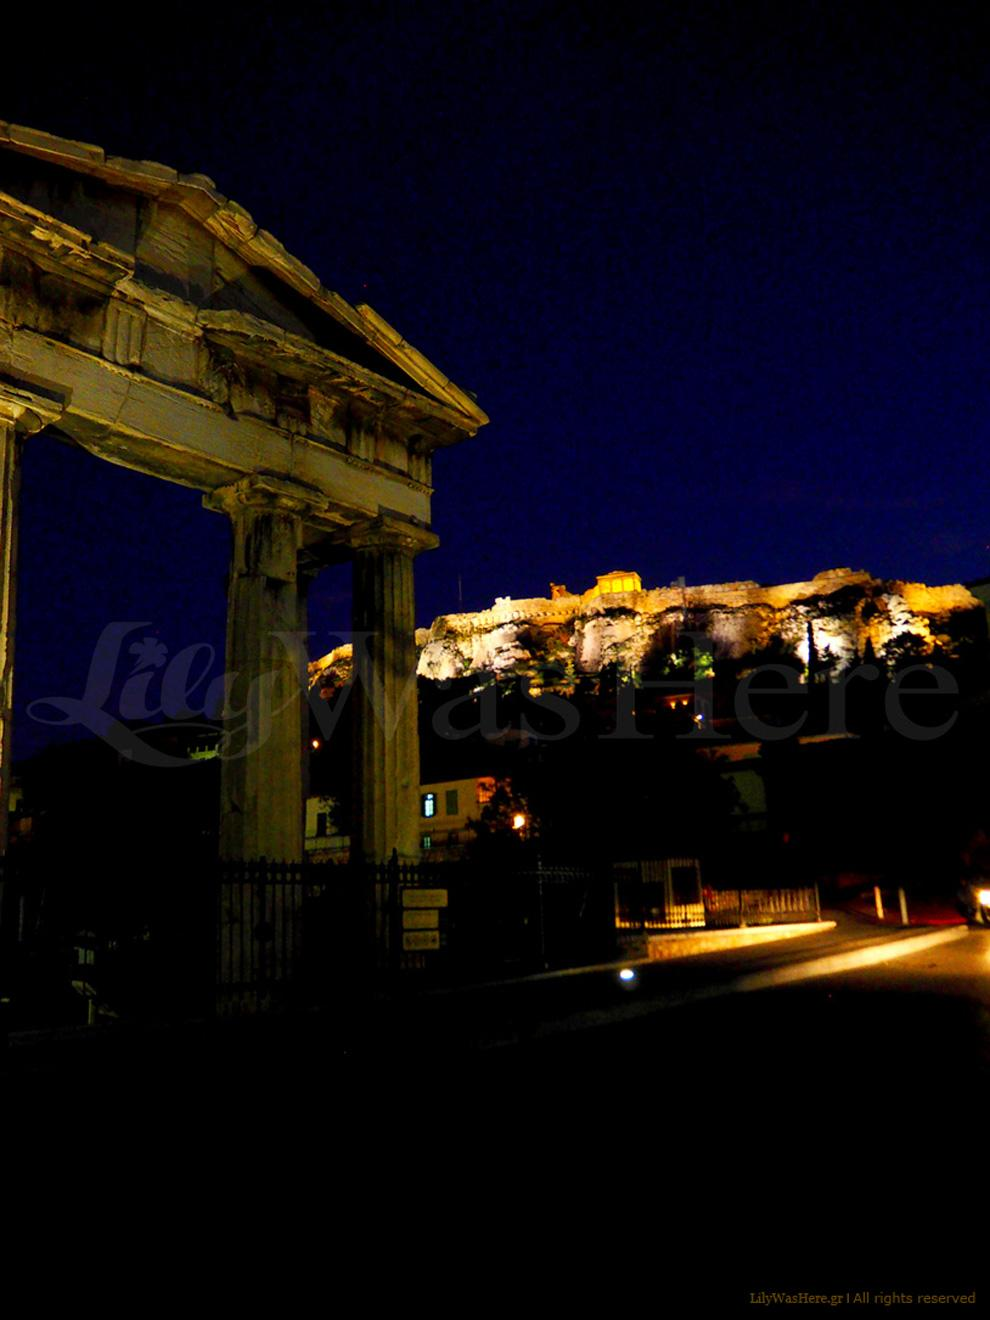 Athens by night, Αθήνα Πλάκα, Πλάκα Αθήνας, Η Πλάκα τη νύχτα, Αθήνα νύχτα, Κέντρο Αθήνας νύχτα,